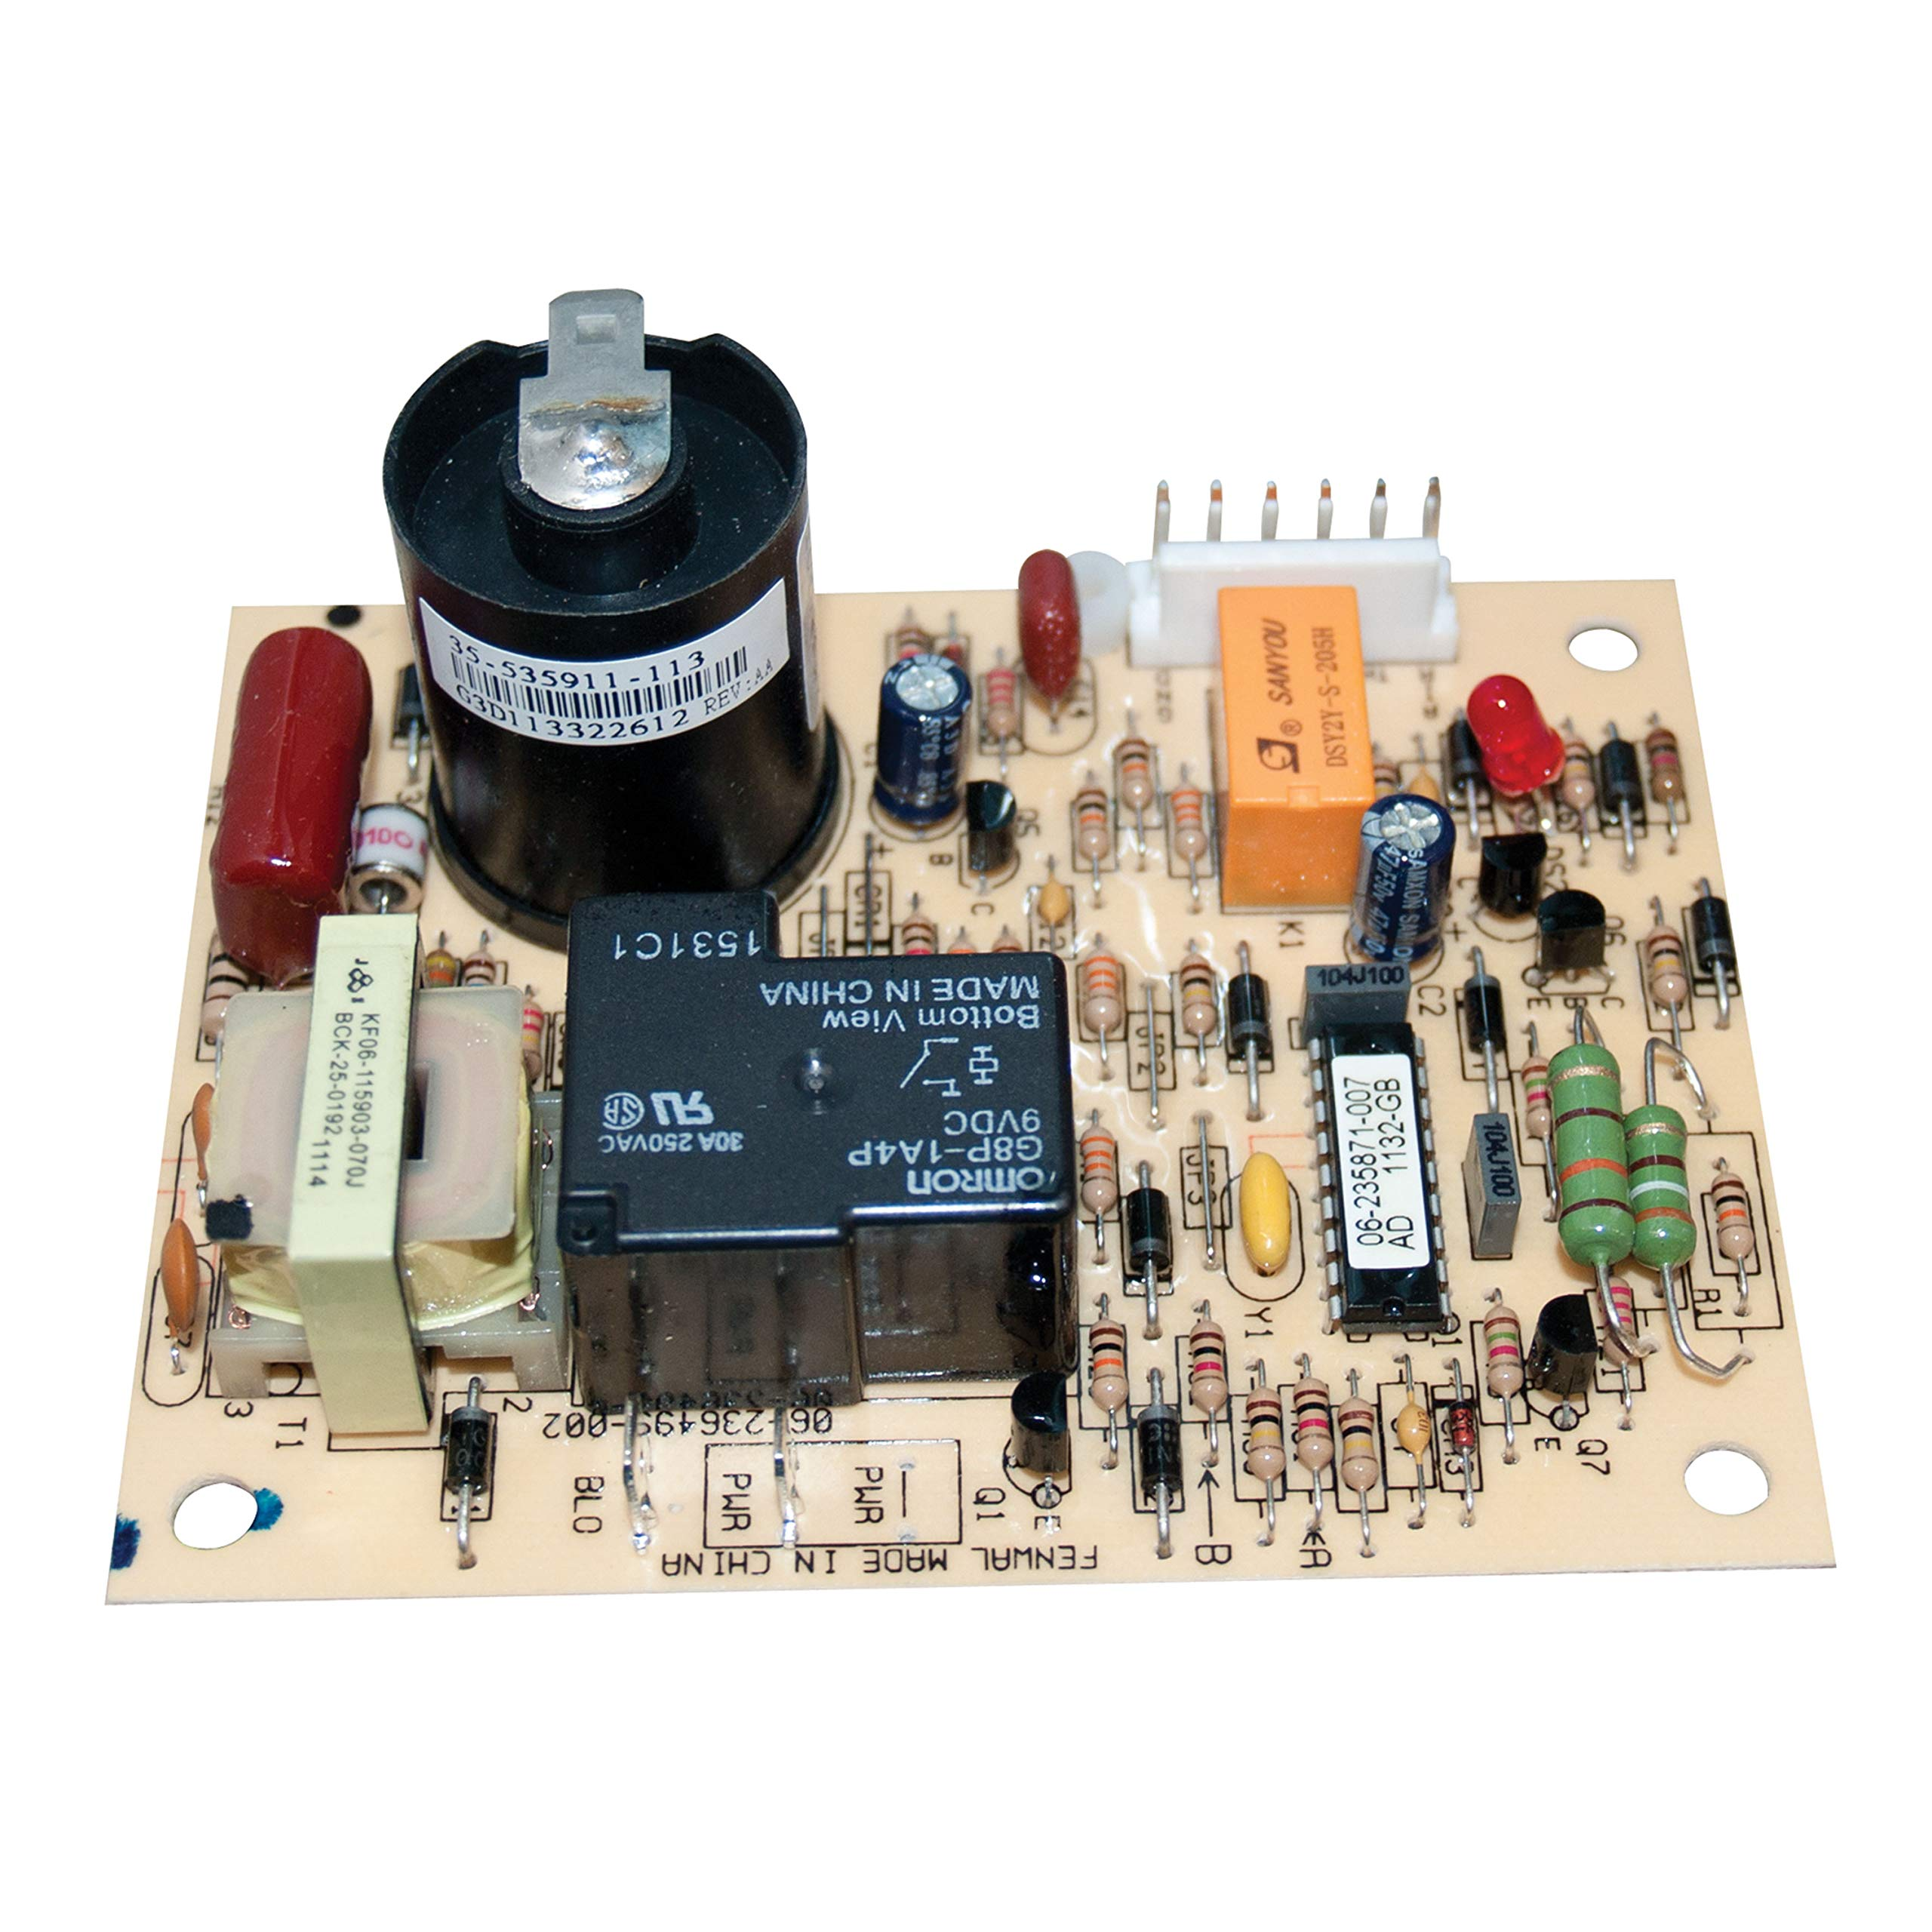 Dometic Hydro Flame Corp 31501 Ignition Control Board by Dometic